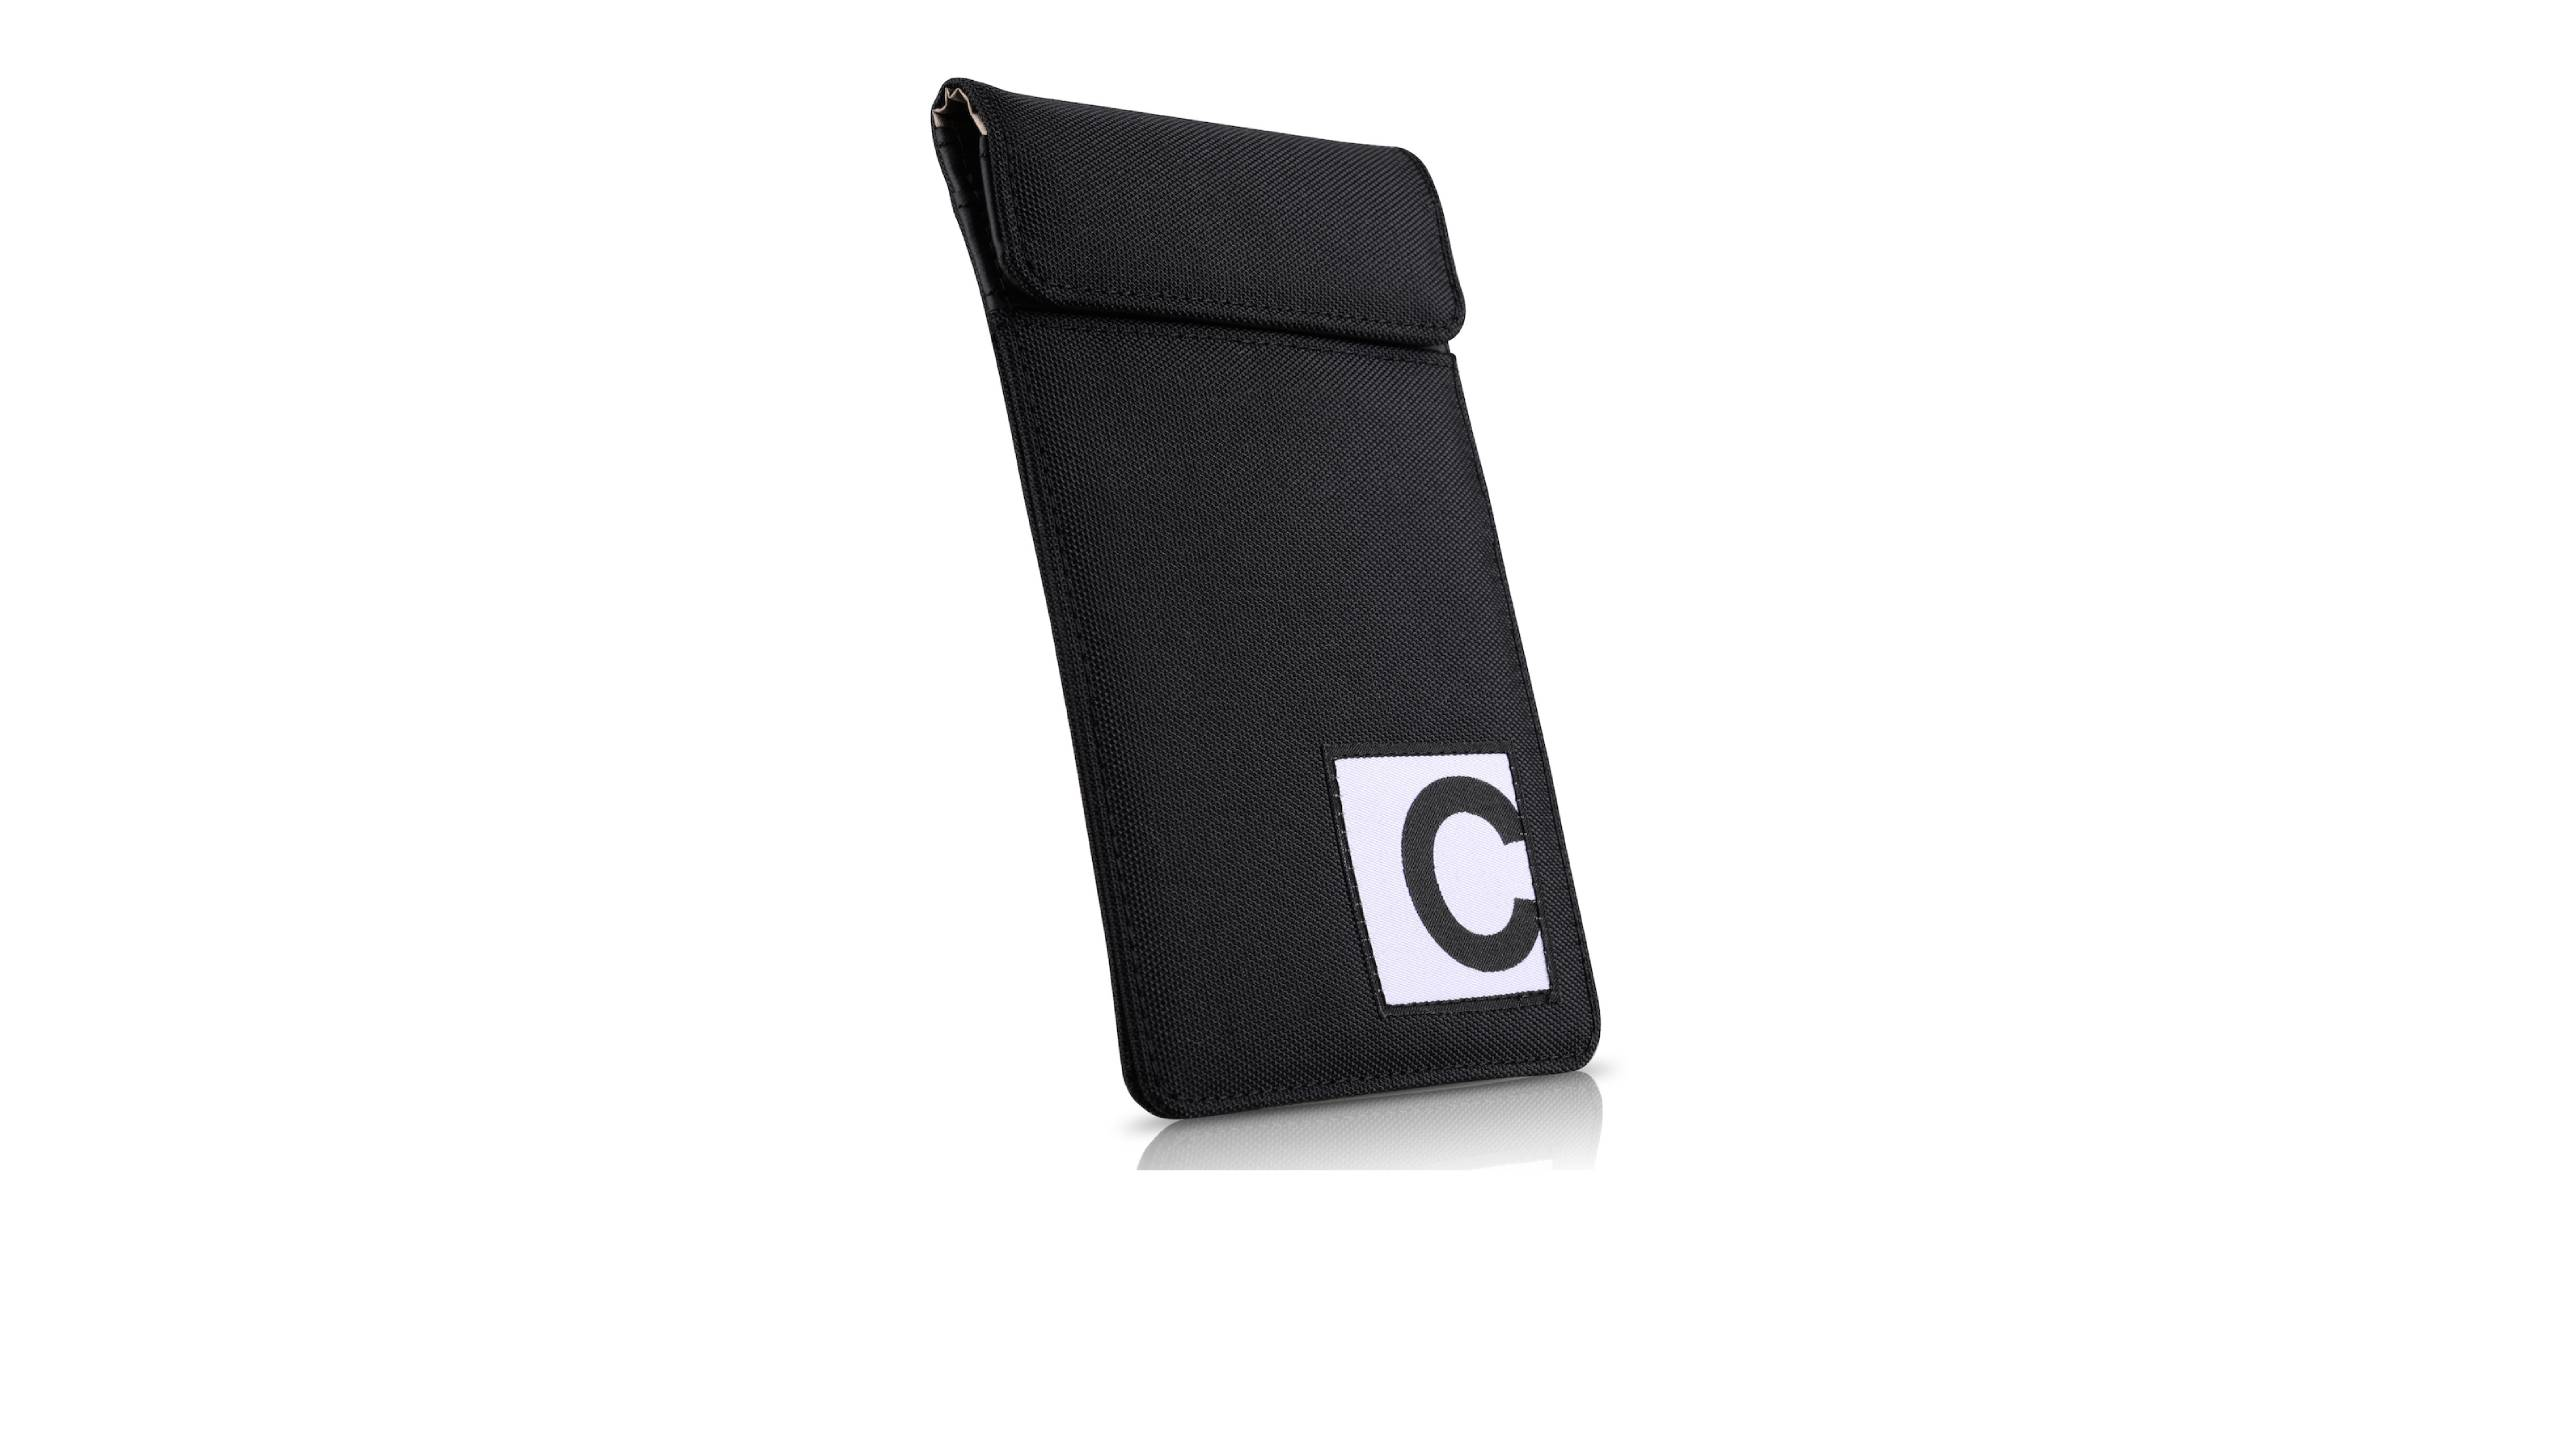 Casa-Branded Case Brings Military Tech to Bitcoin Wallet Protection